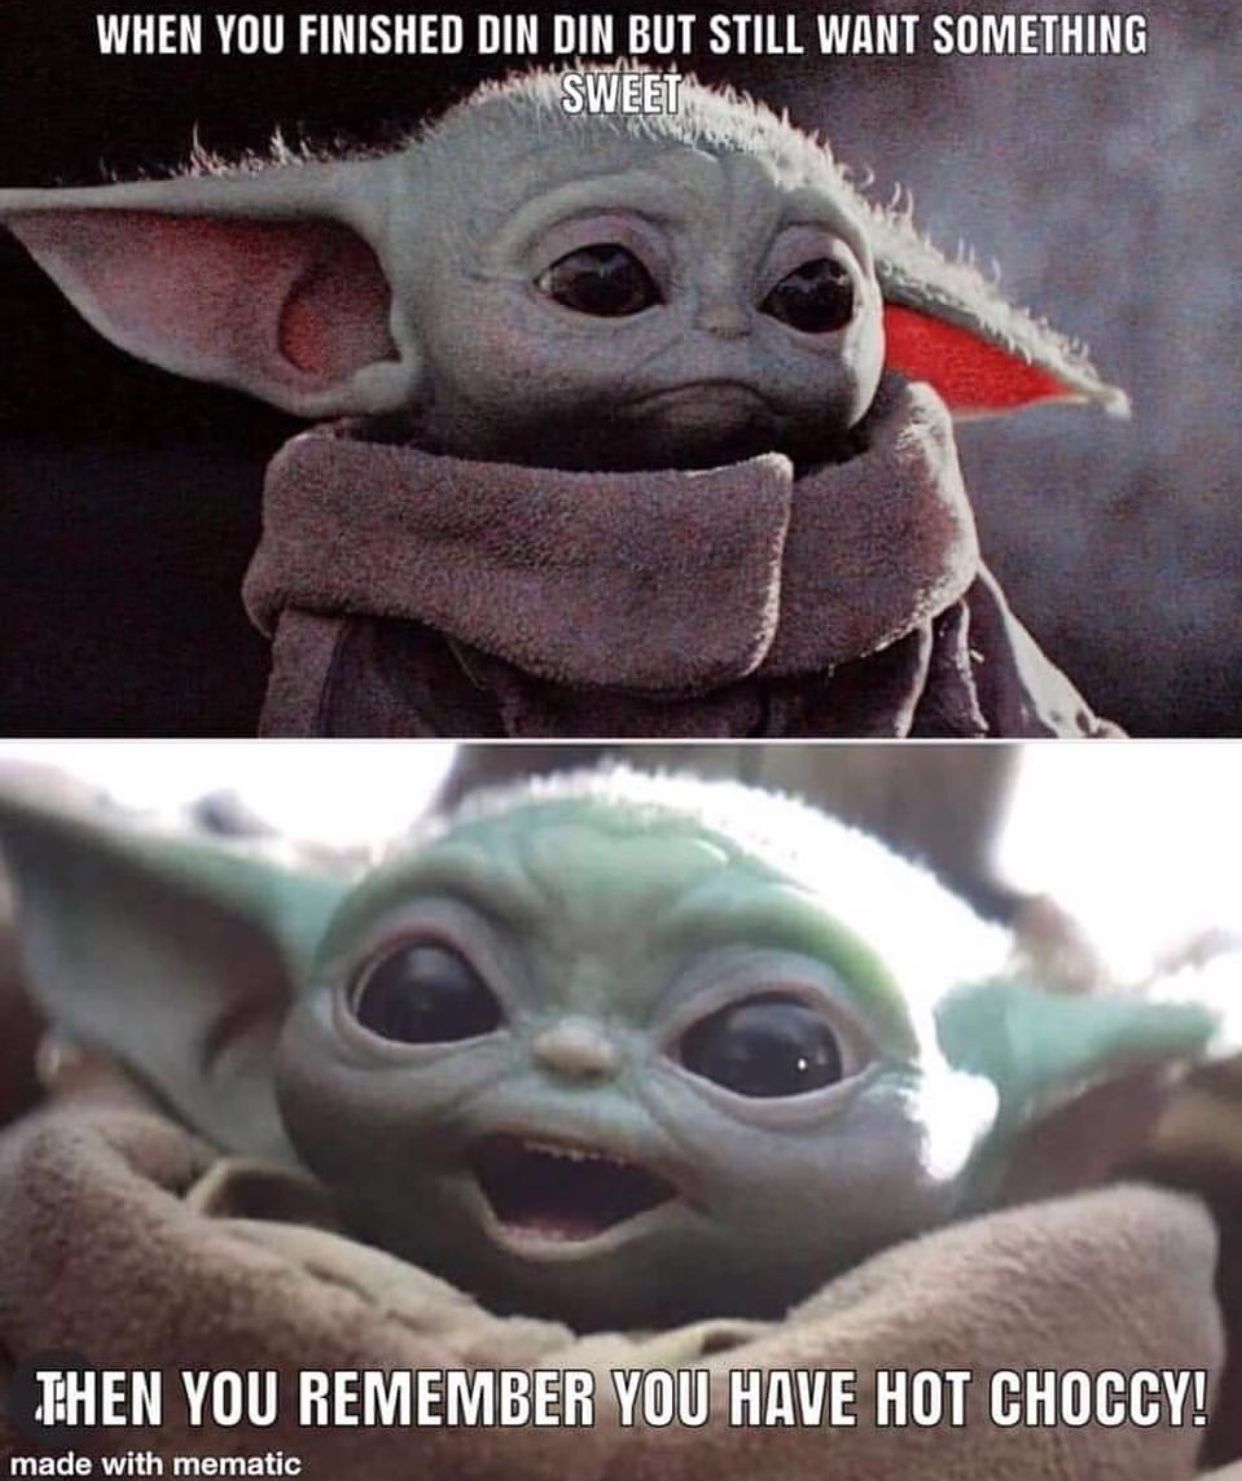 Funny star wars memes by Camrie Shelburne on Baby Yoda/The